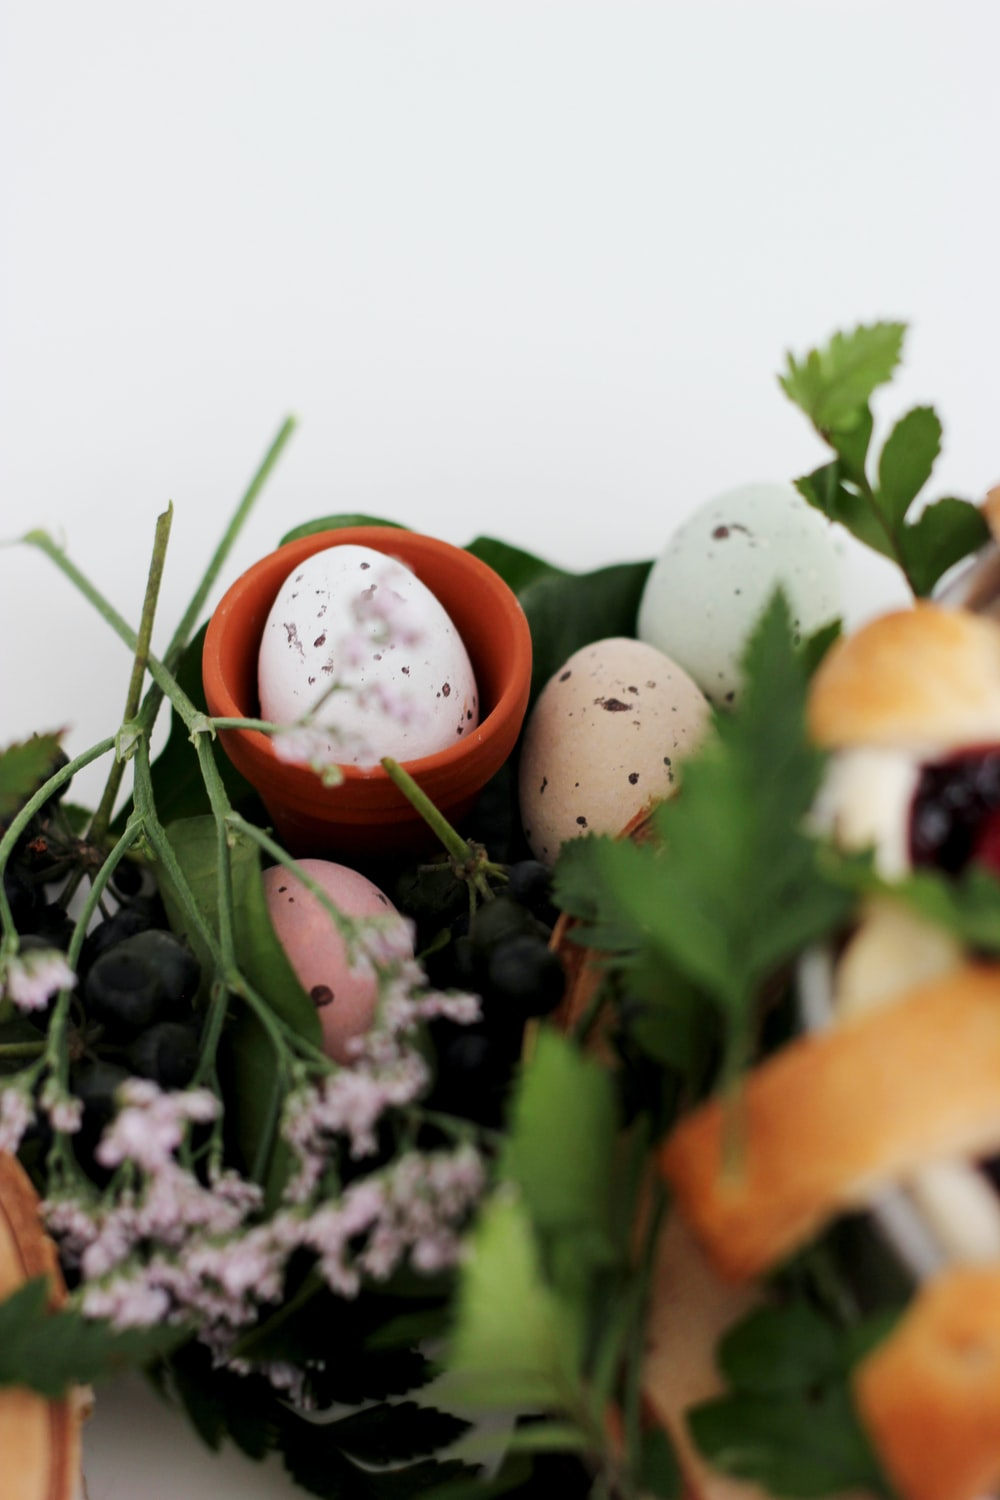 assorted-color organic eggs beside pink petaled flower